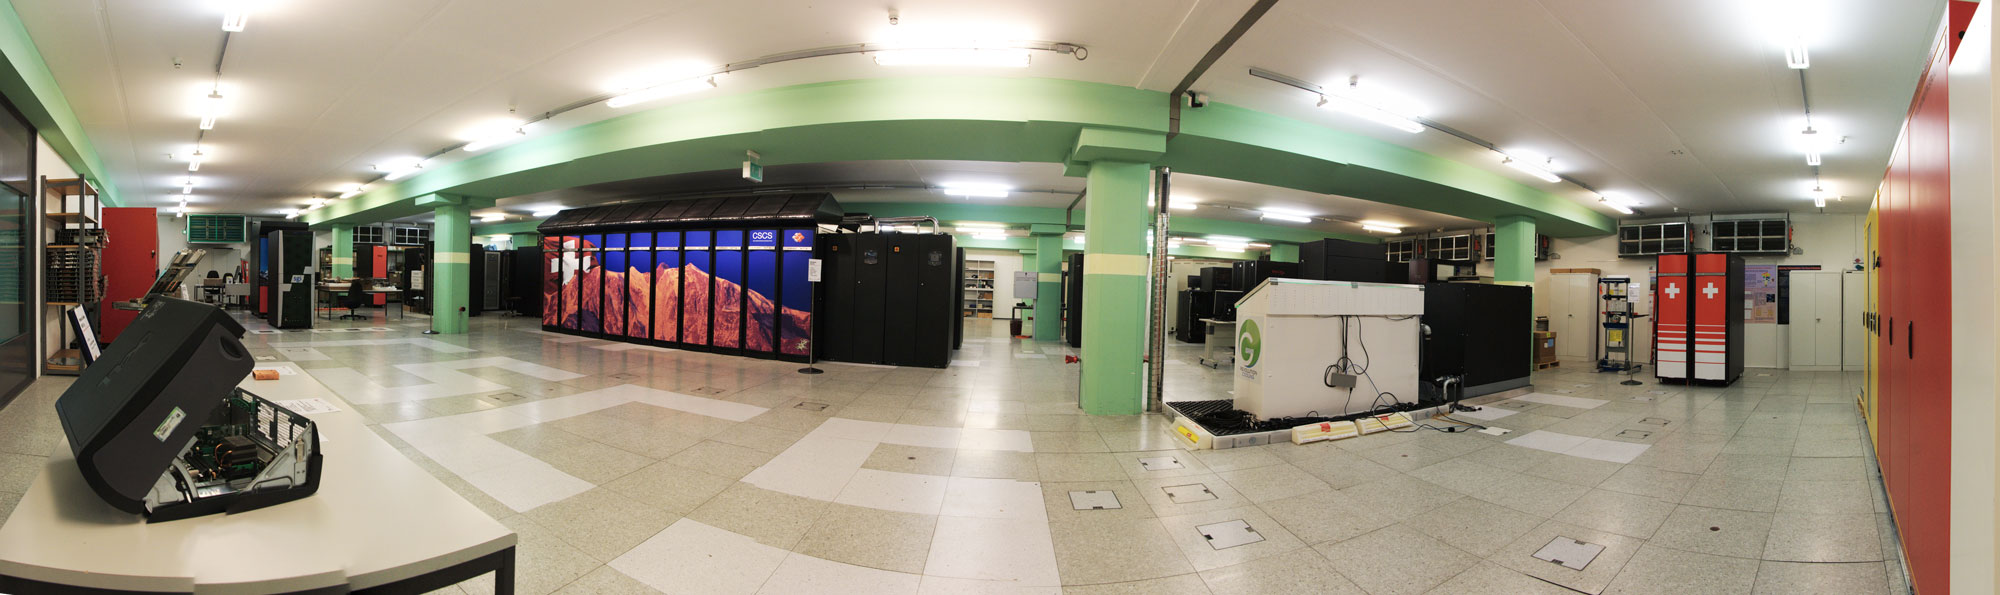 Panorama View of Computer Room at CSCS